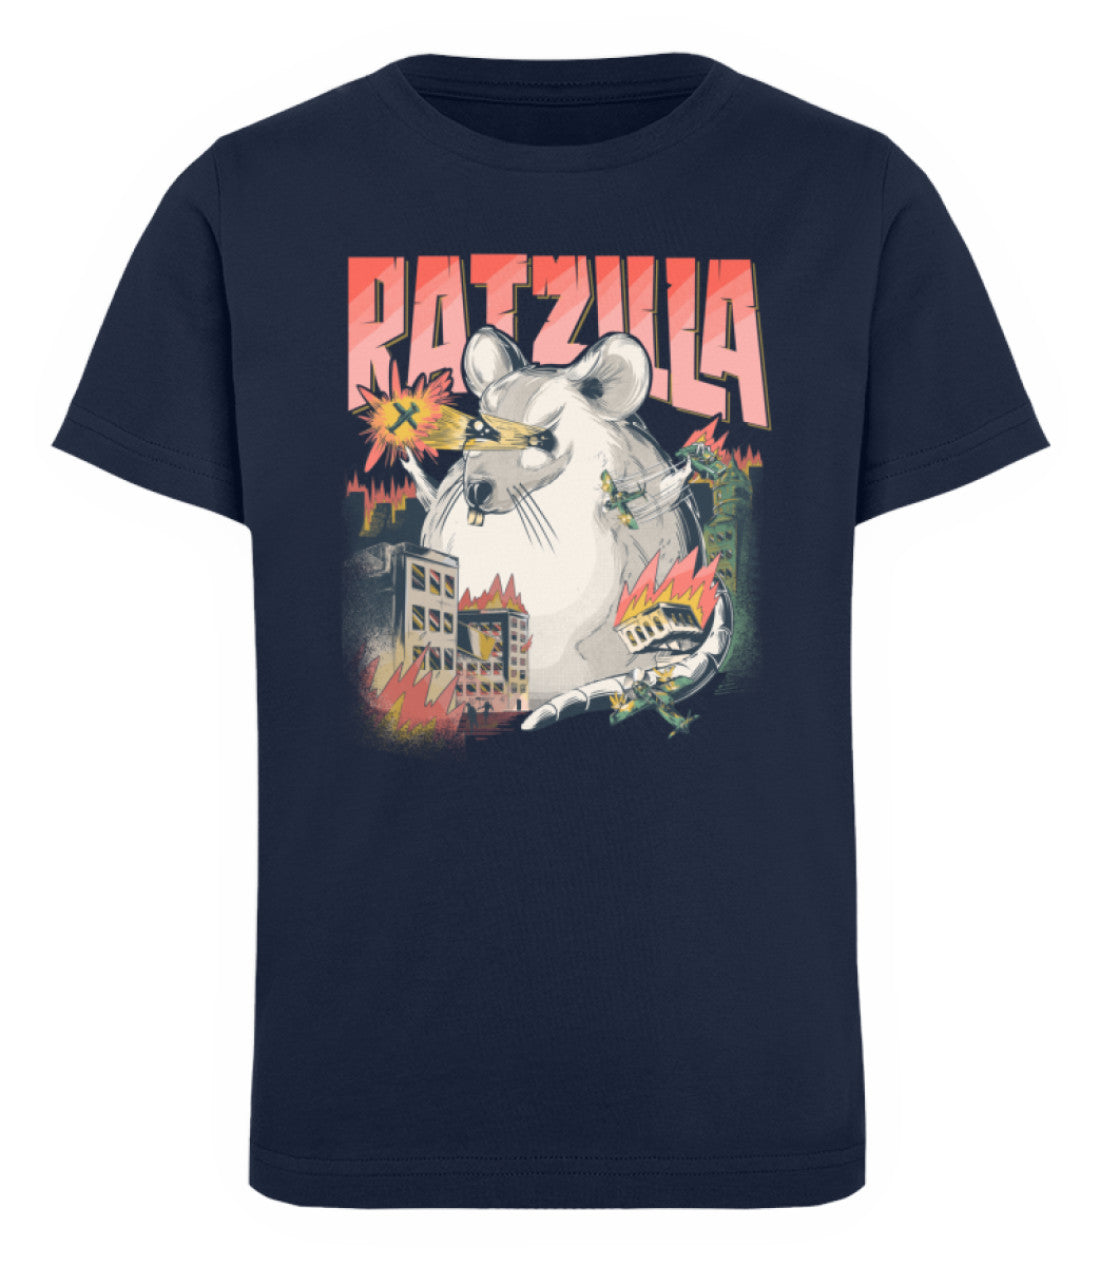 Zeigt ratzilla lustiges ratten monster kinder organic t shirt in Farbe Black